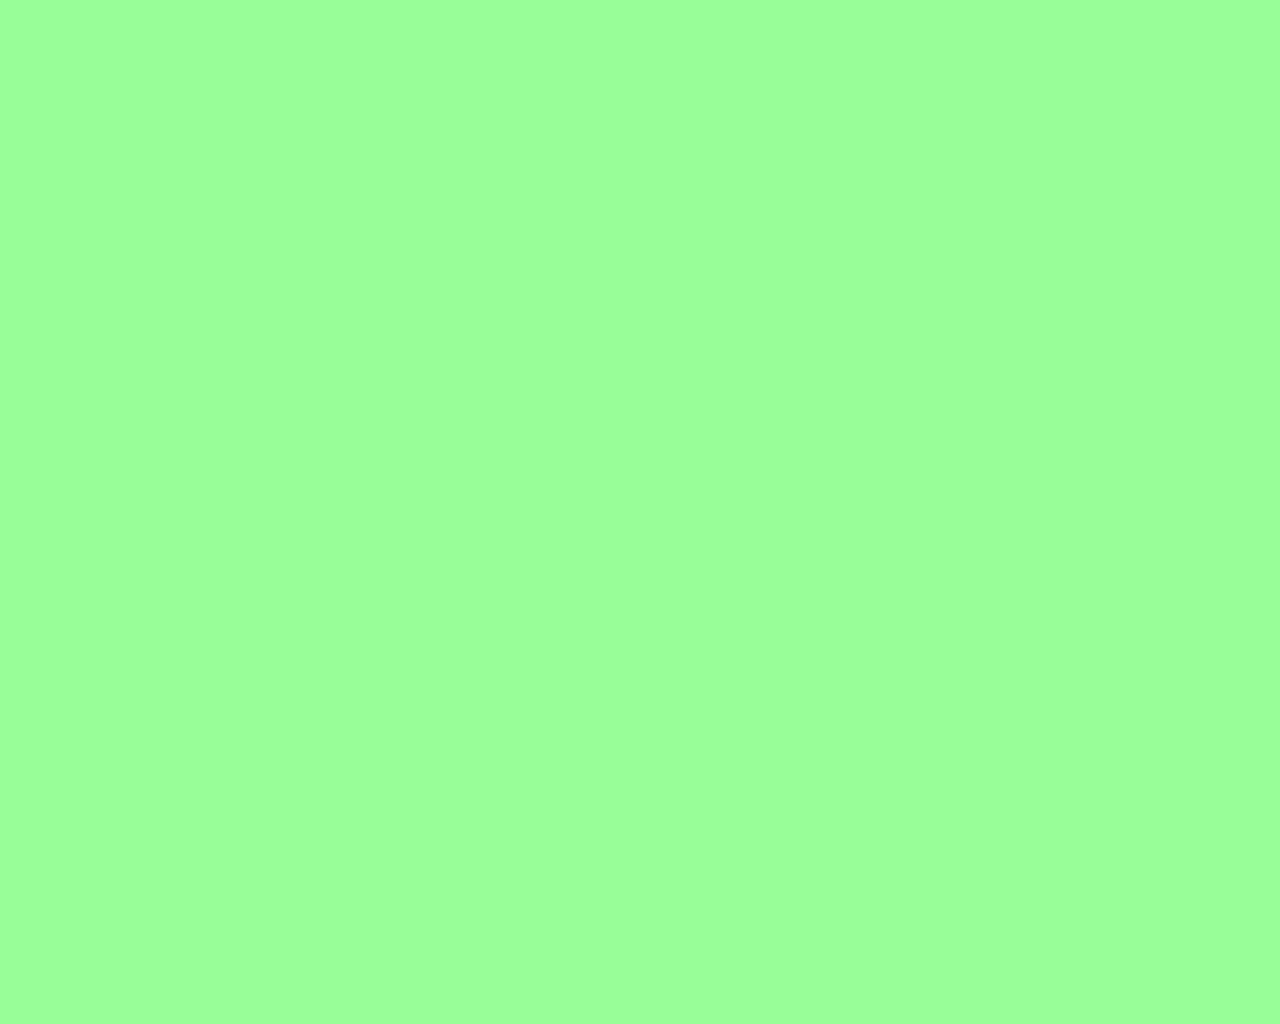 Solid Mint Green Background 1280x1024 mint green solid 1280x1024